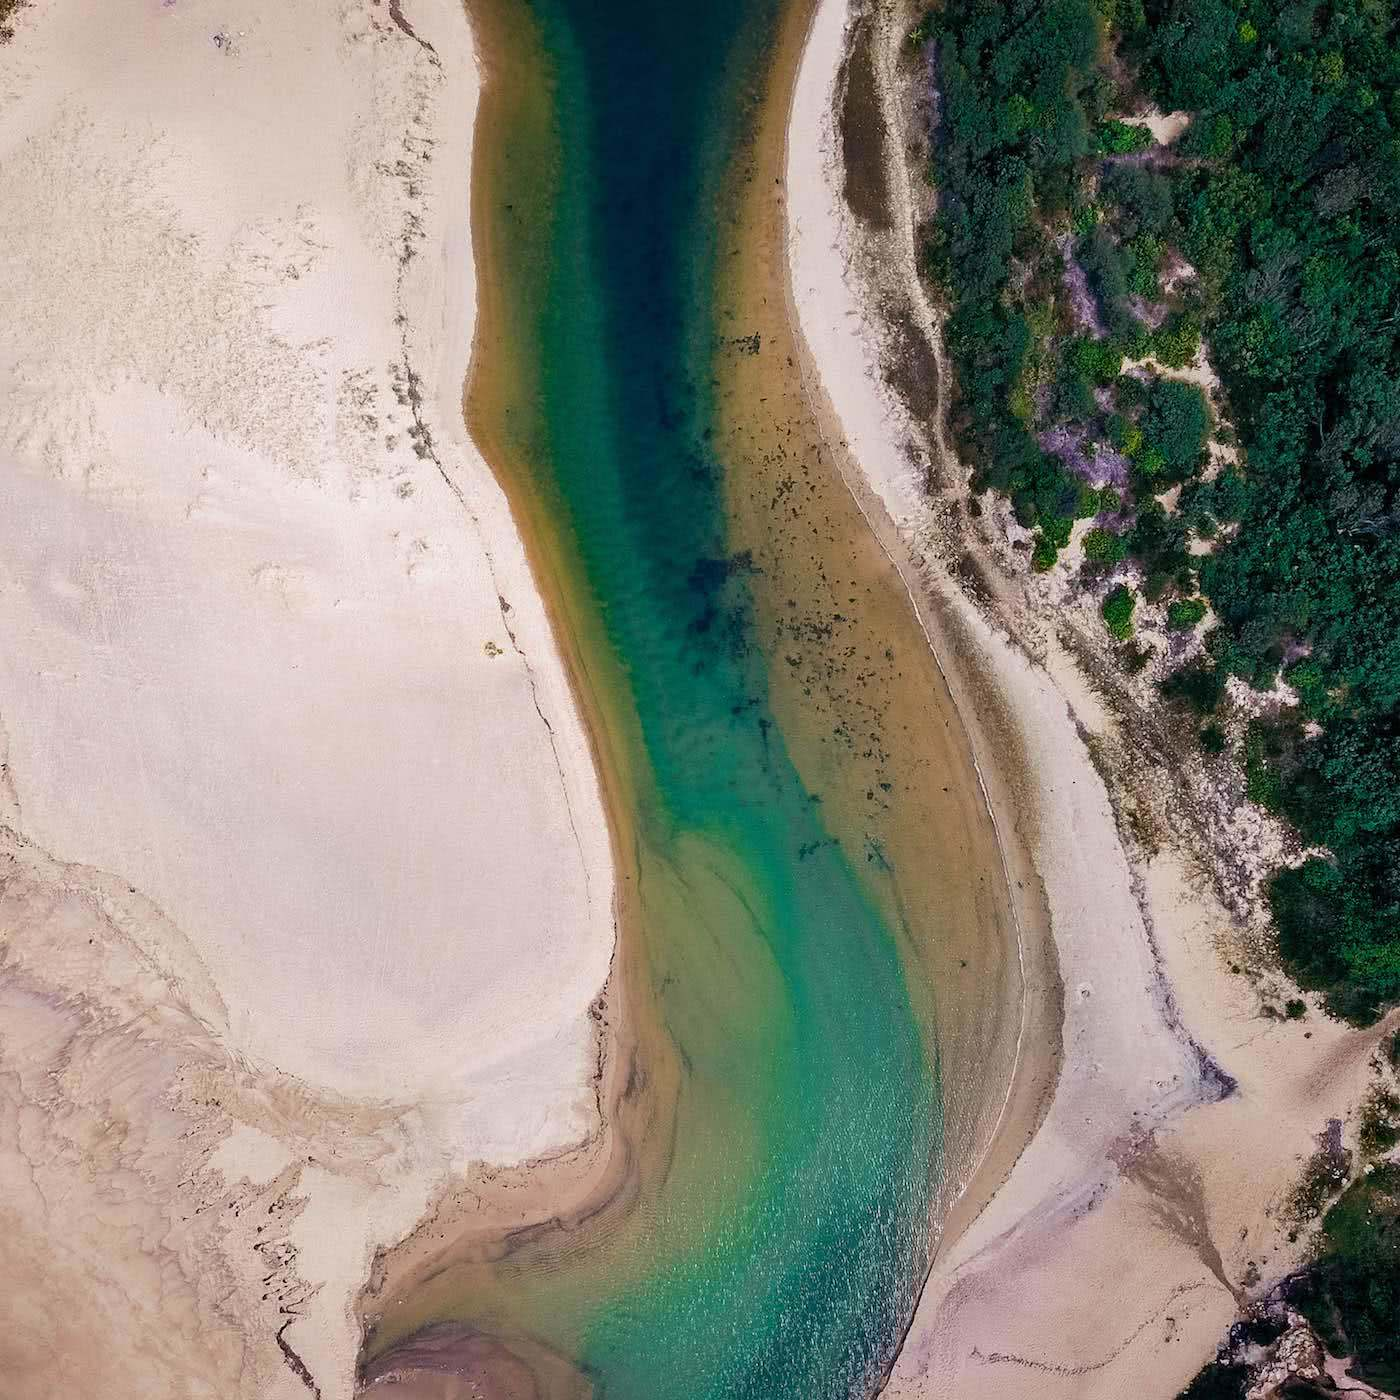 A hidden jungle - the yuelarbah track, by Damon Tually, drone shot of estuary